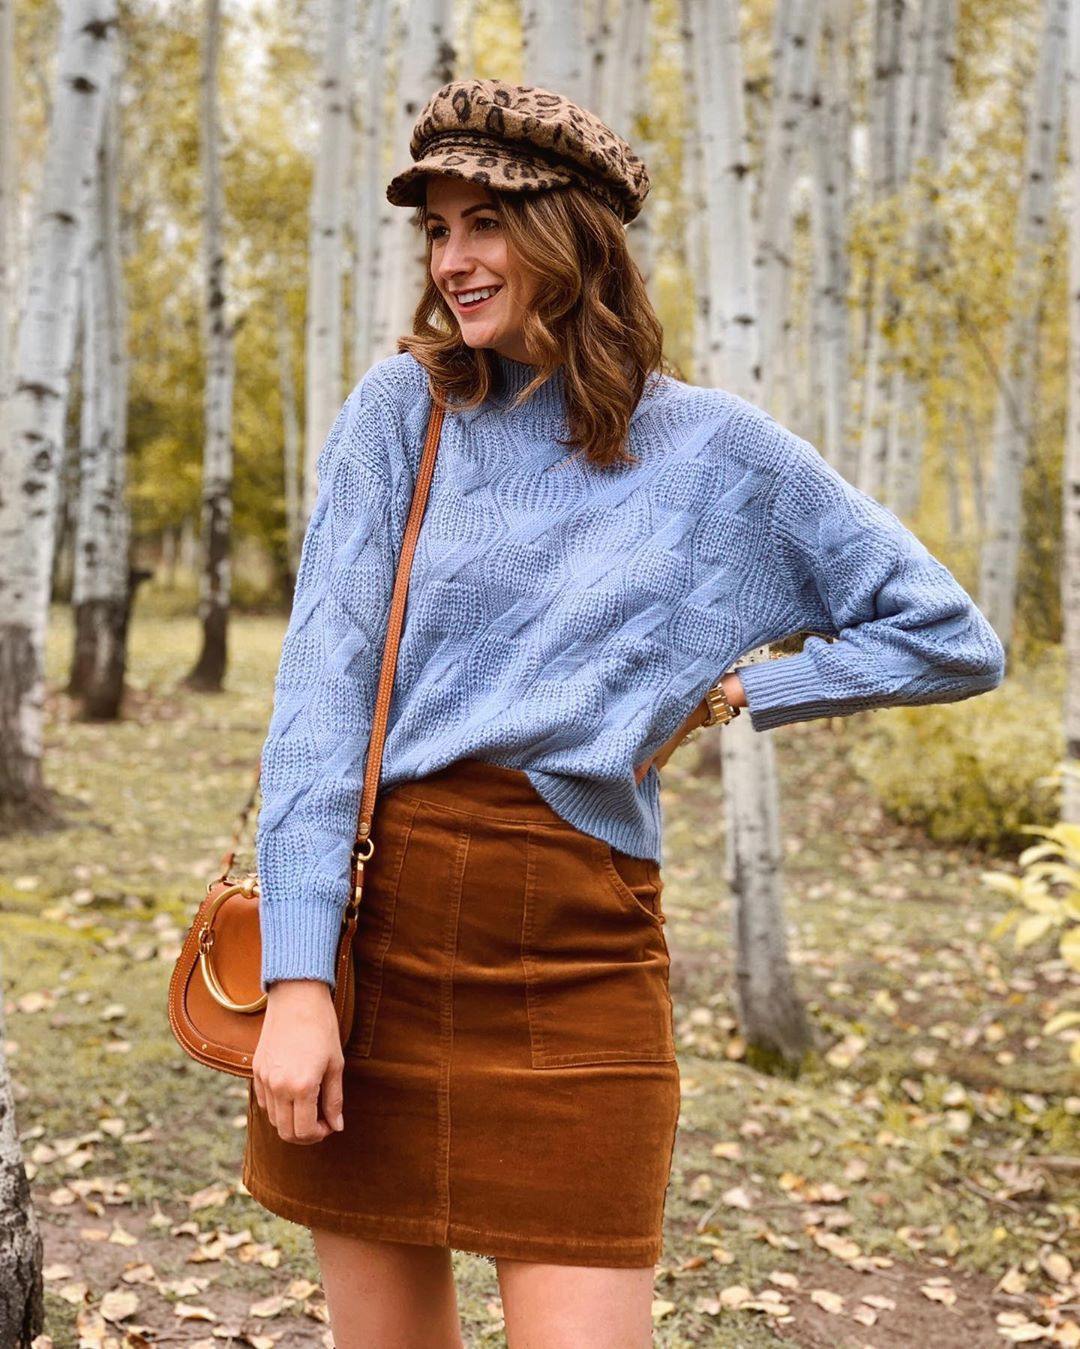 skirt mini skirt sweater cable knit brown bag